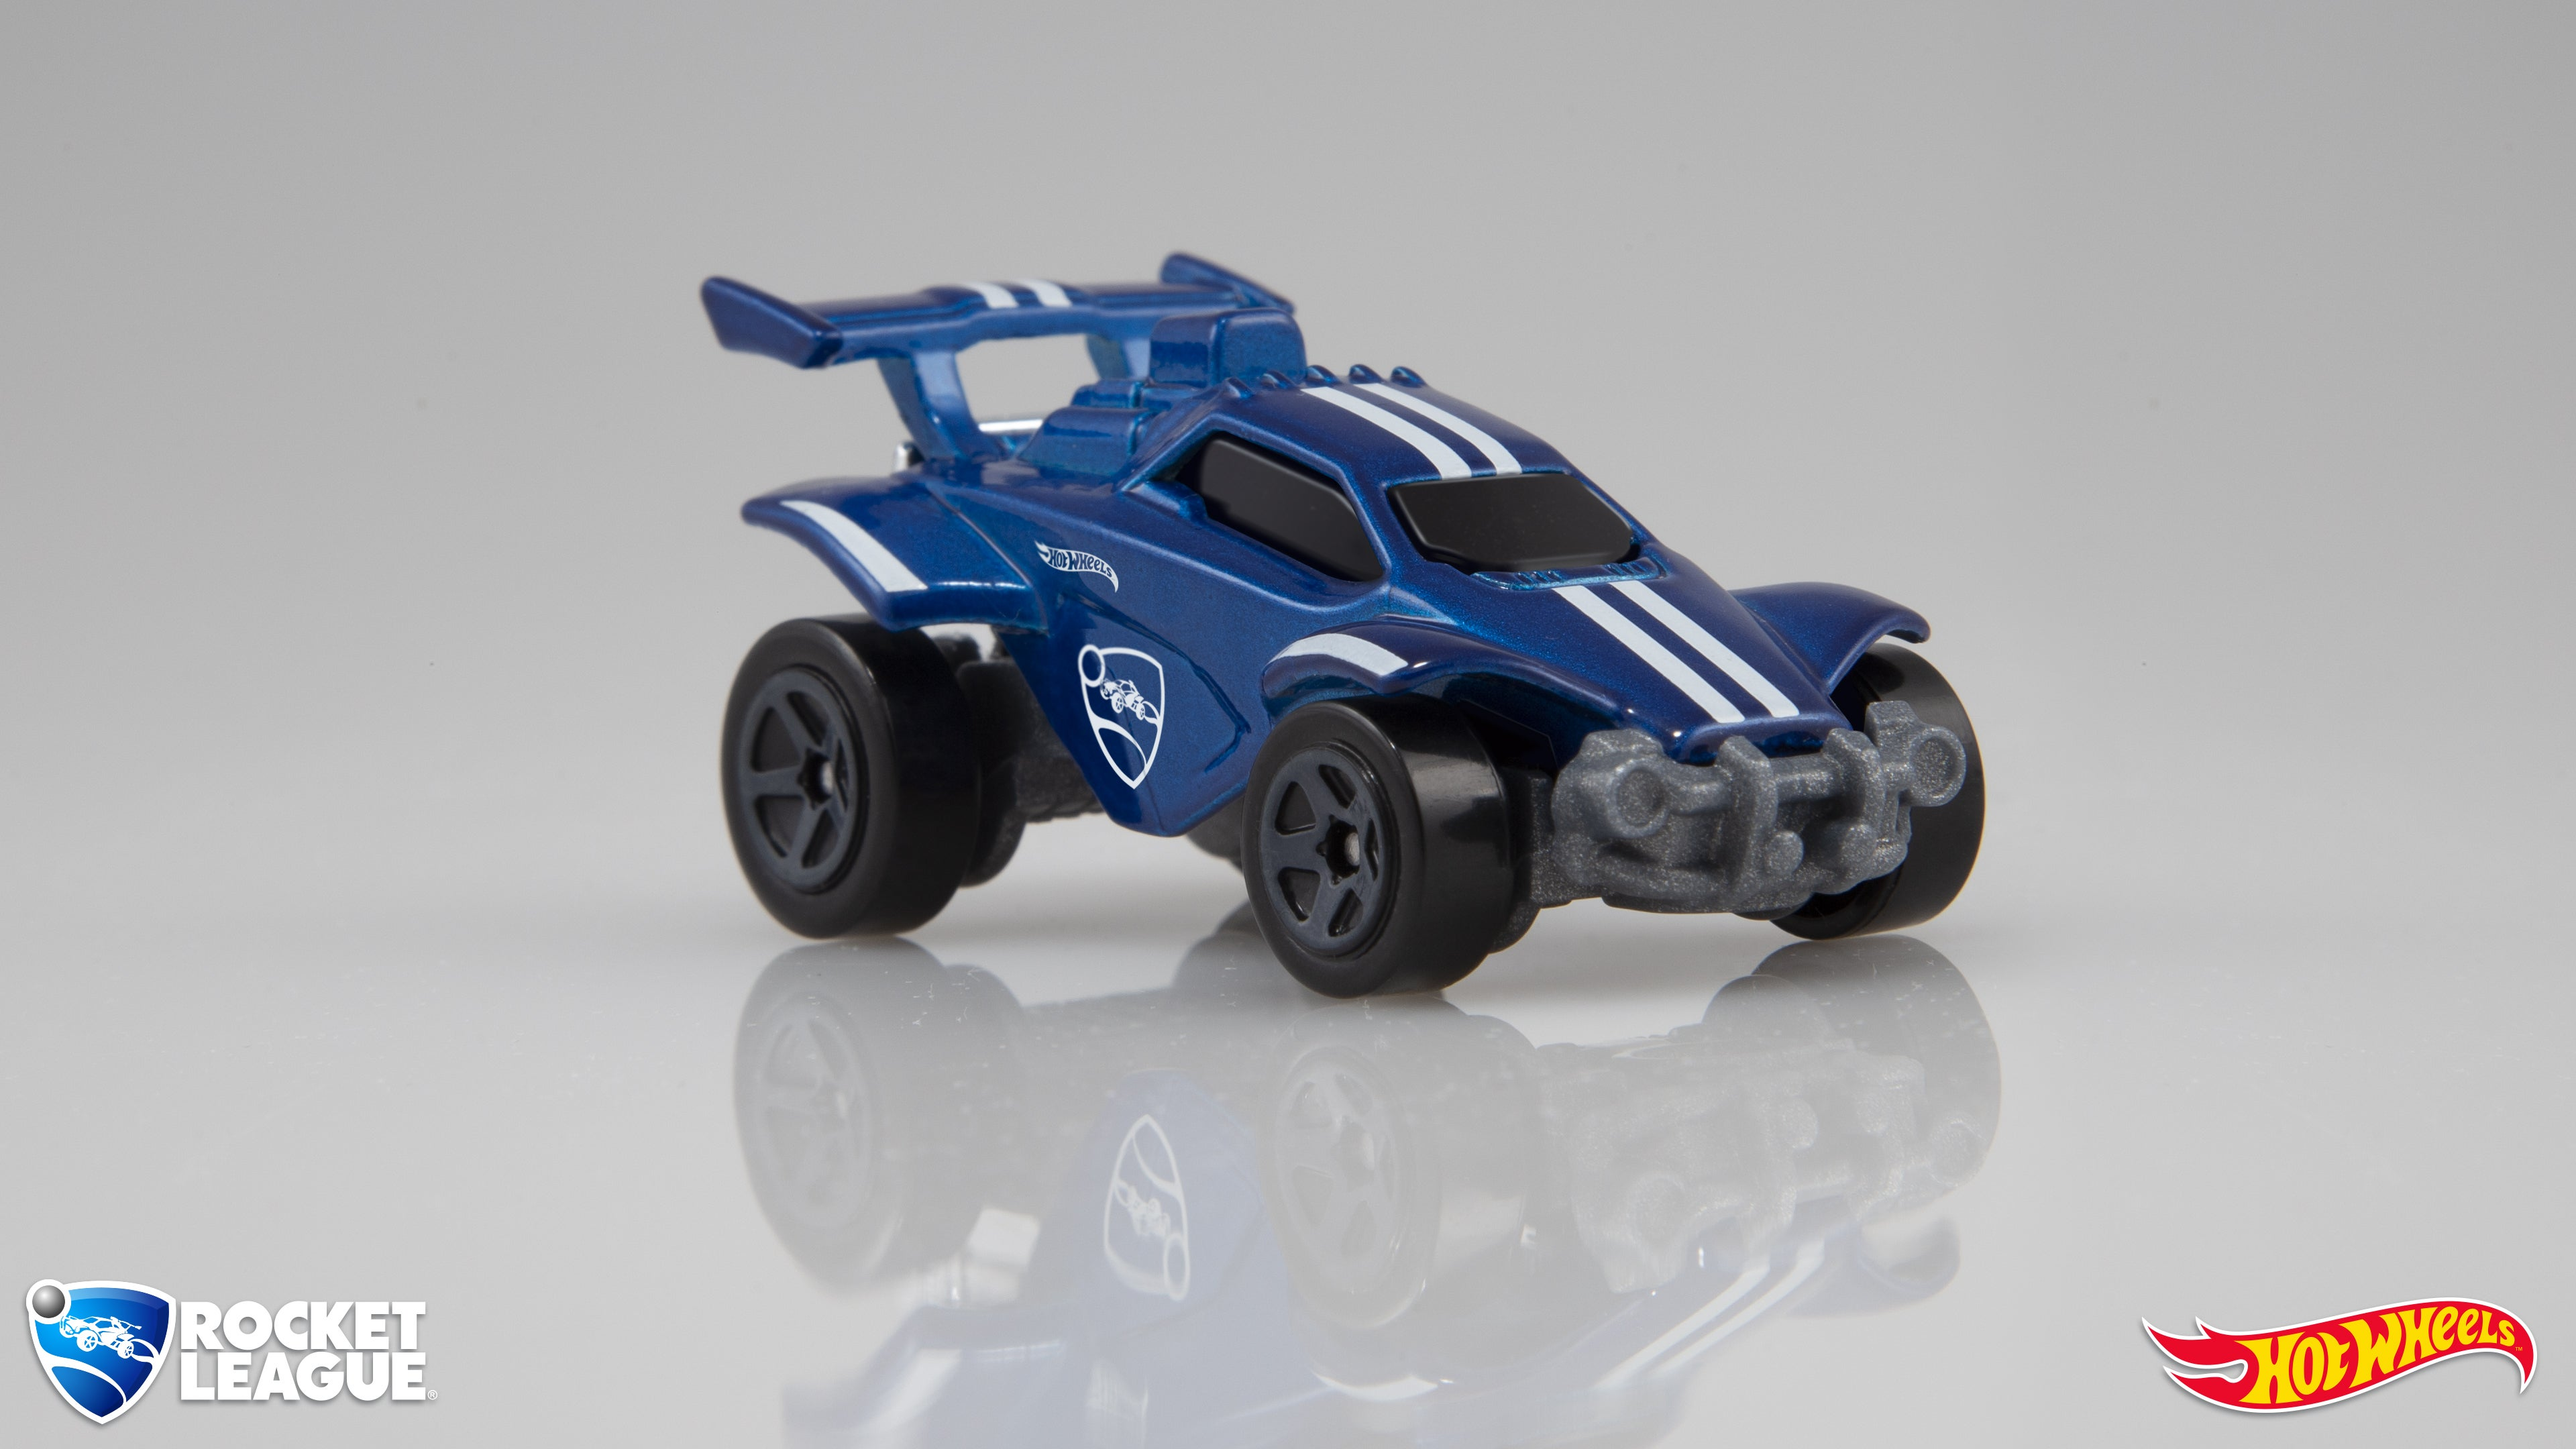 IMAGE(https://rocketleague.media.zestyio.com/RL-Hot-Wheels-Diecast-Front-Logos.jpg)